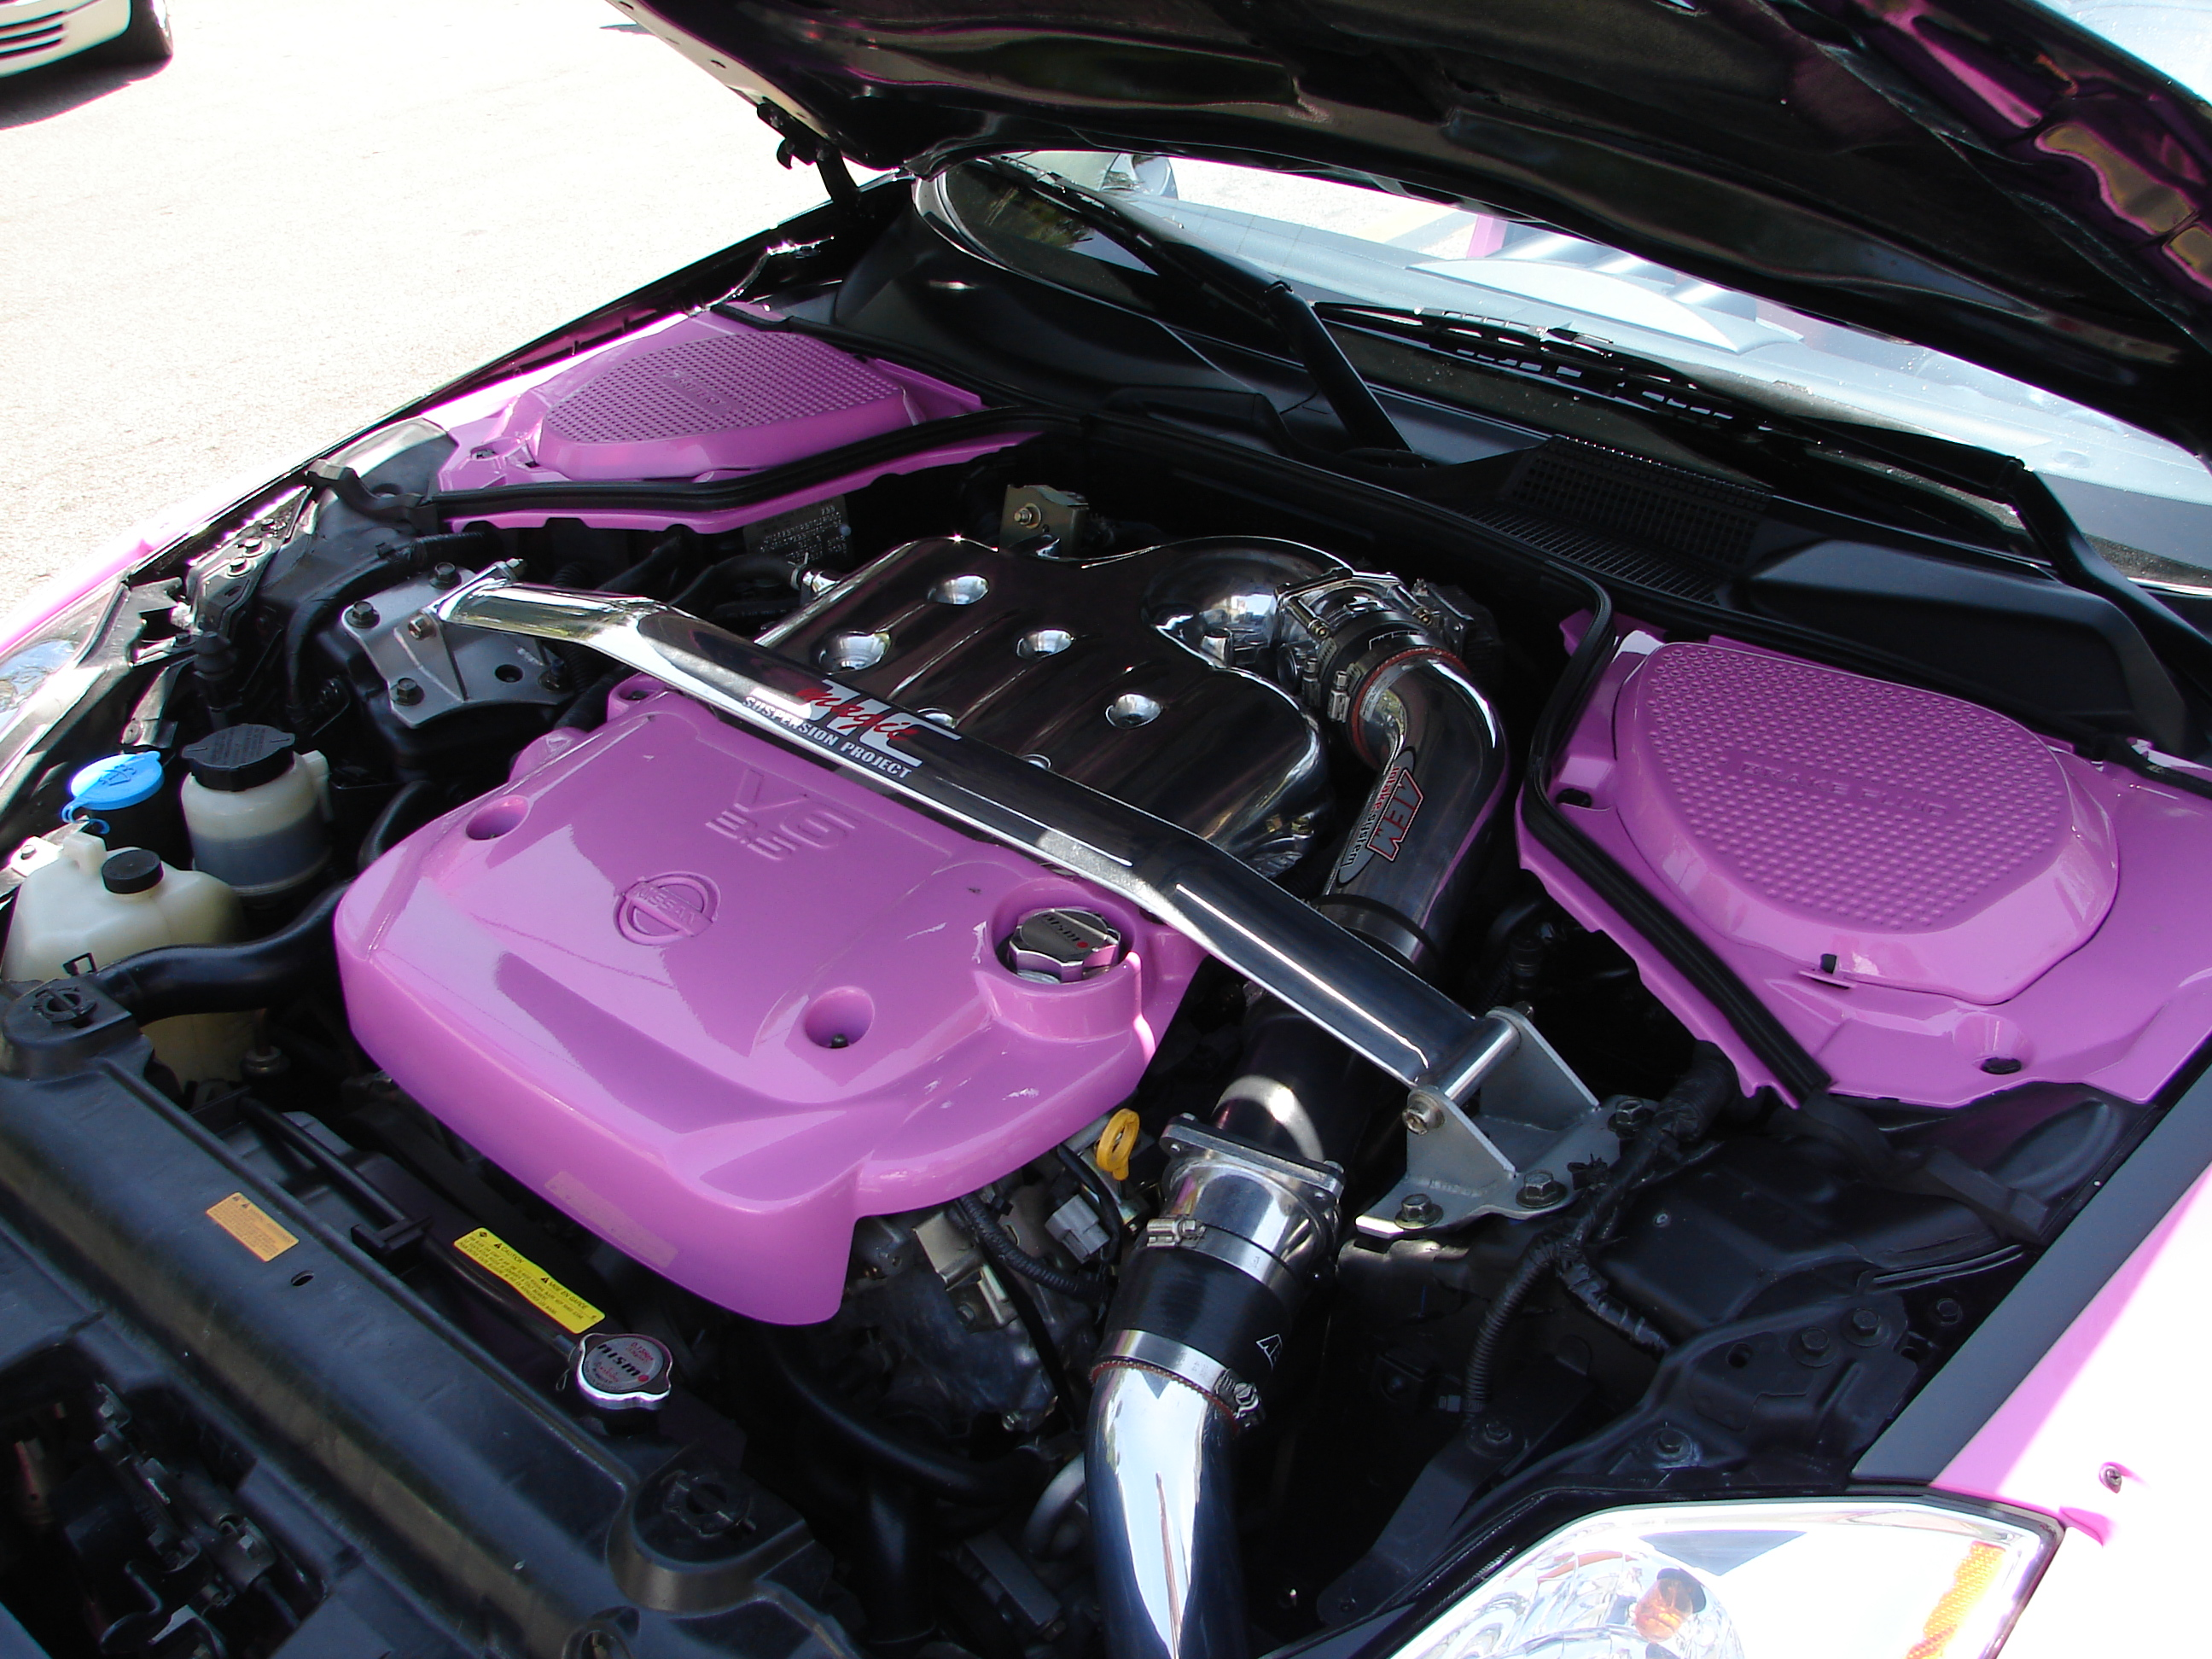 Nissan Los Angeles >> File:350Z very pink - engine.jpg - Wikimedia Commons